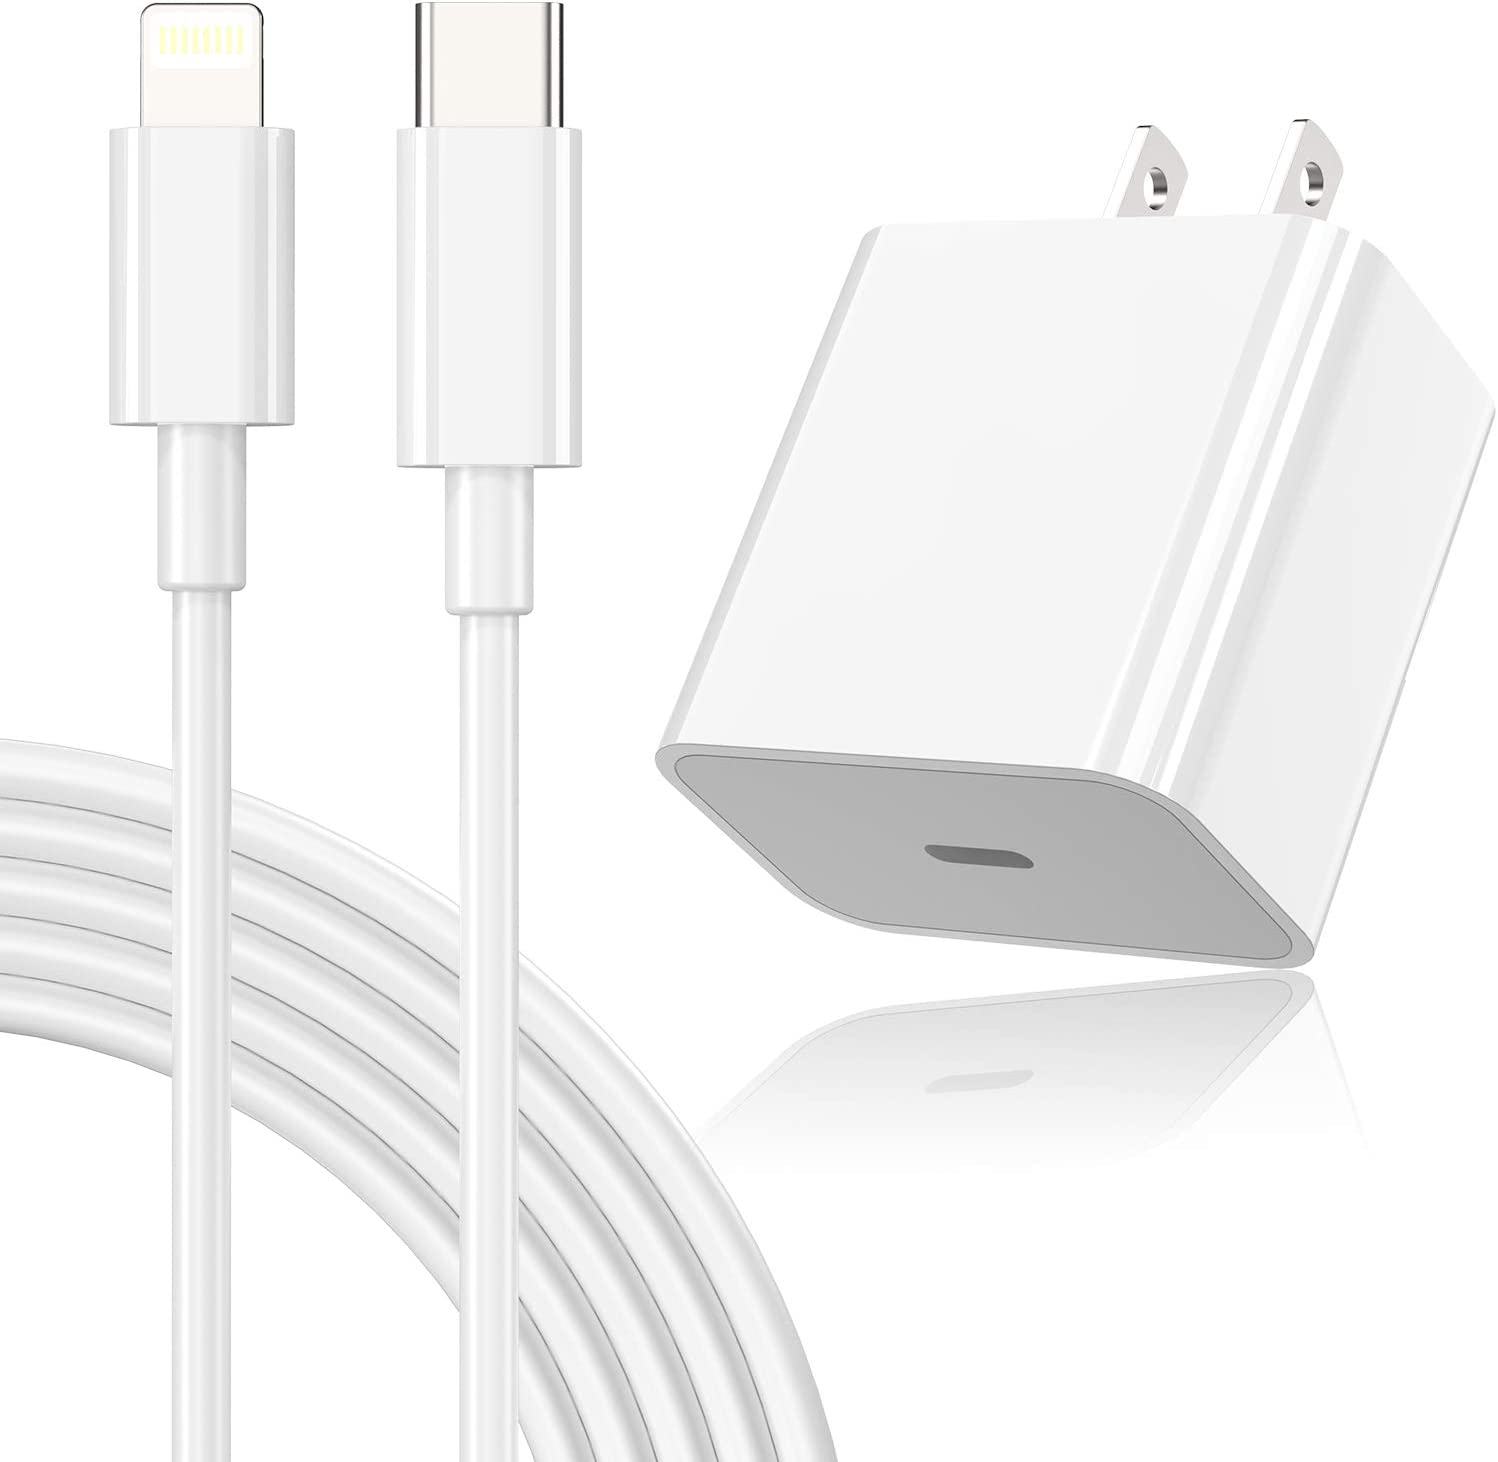 [MFI Certified] iPhone 12 Fast Charger Block 20W PD Wall Charger Plug with 6ft USB C to Lightning Cable for iPhone 12/12 min/12 pro/ 12 pro max/11 pro/11 pro max/Air pods pro/iPad air 3/iPad min4/5